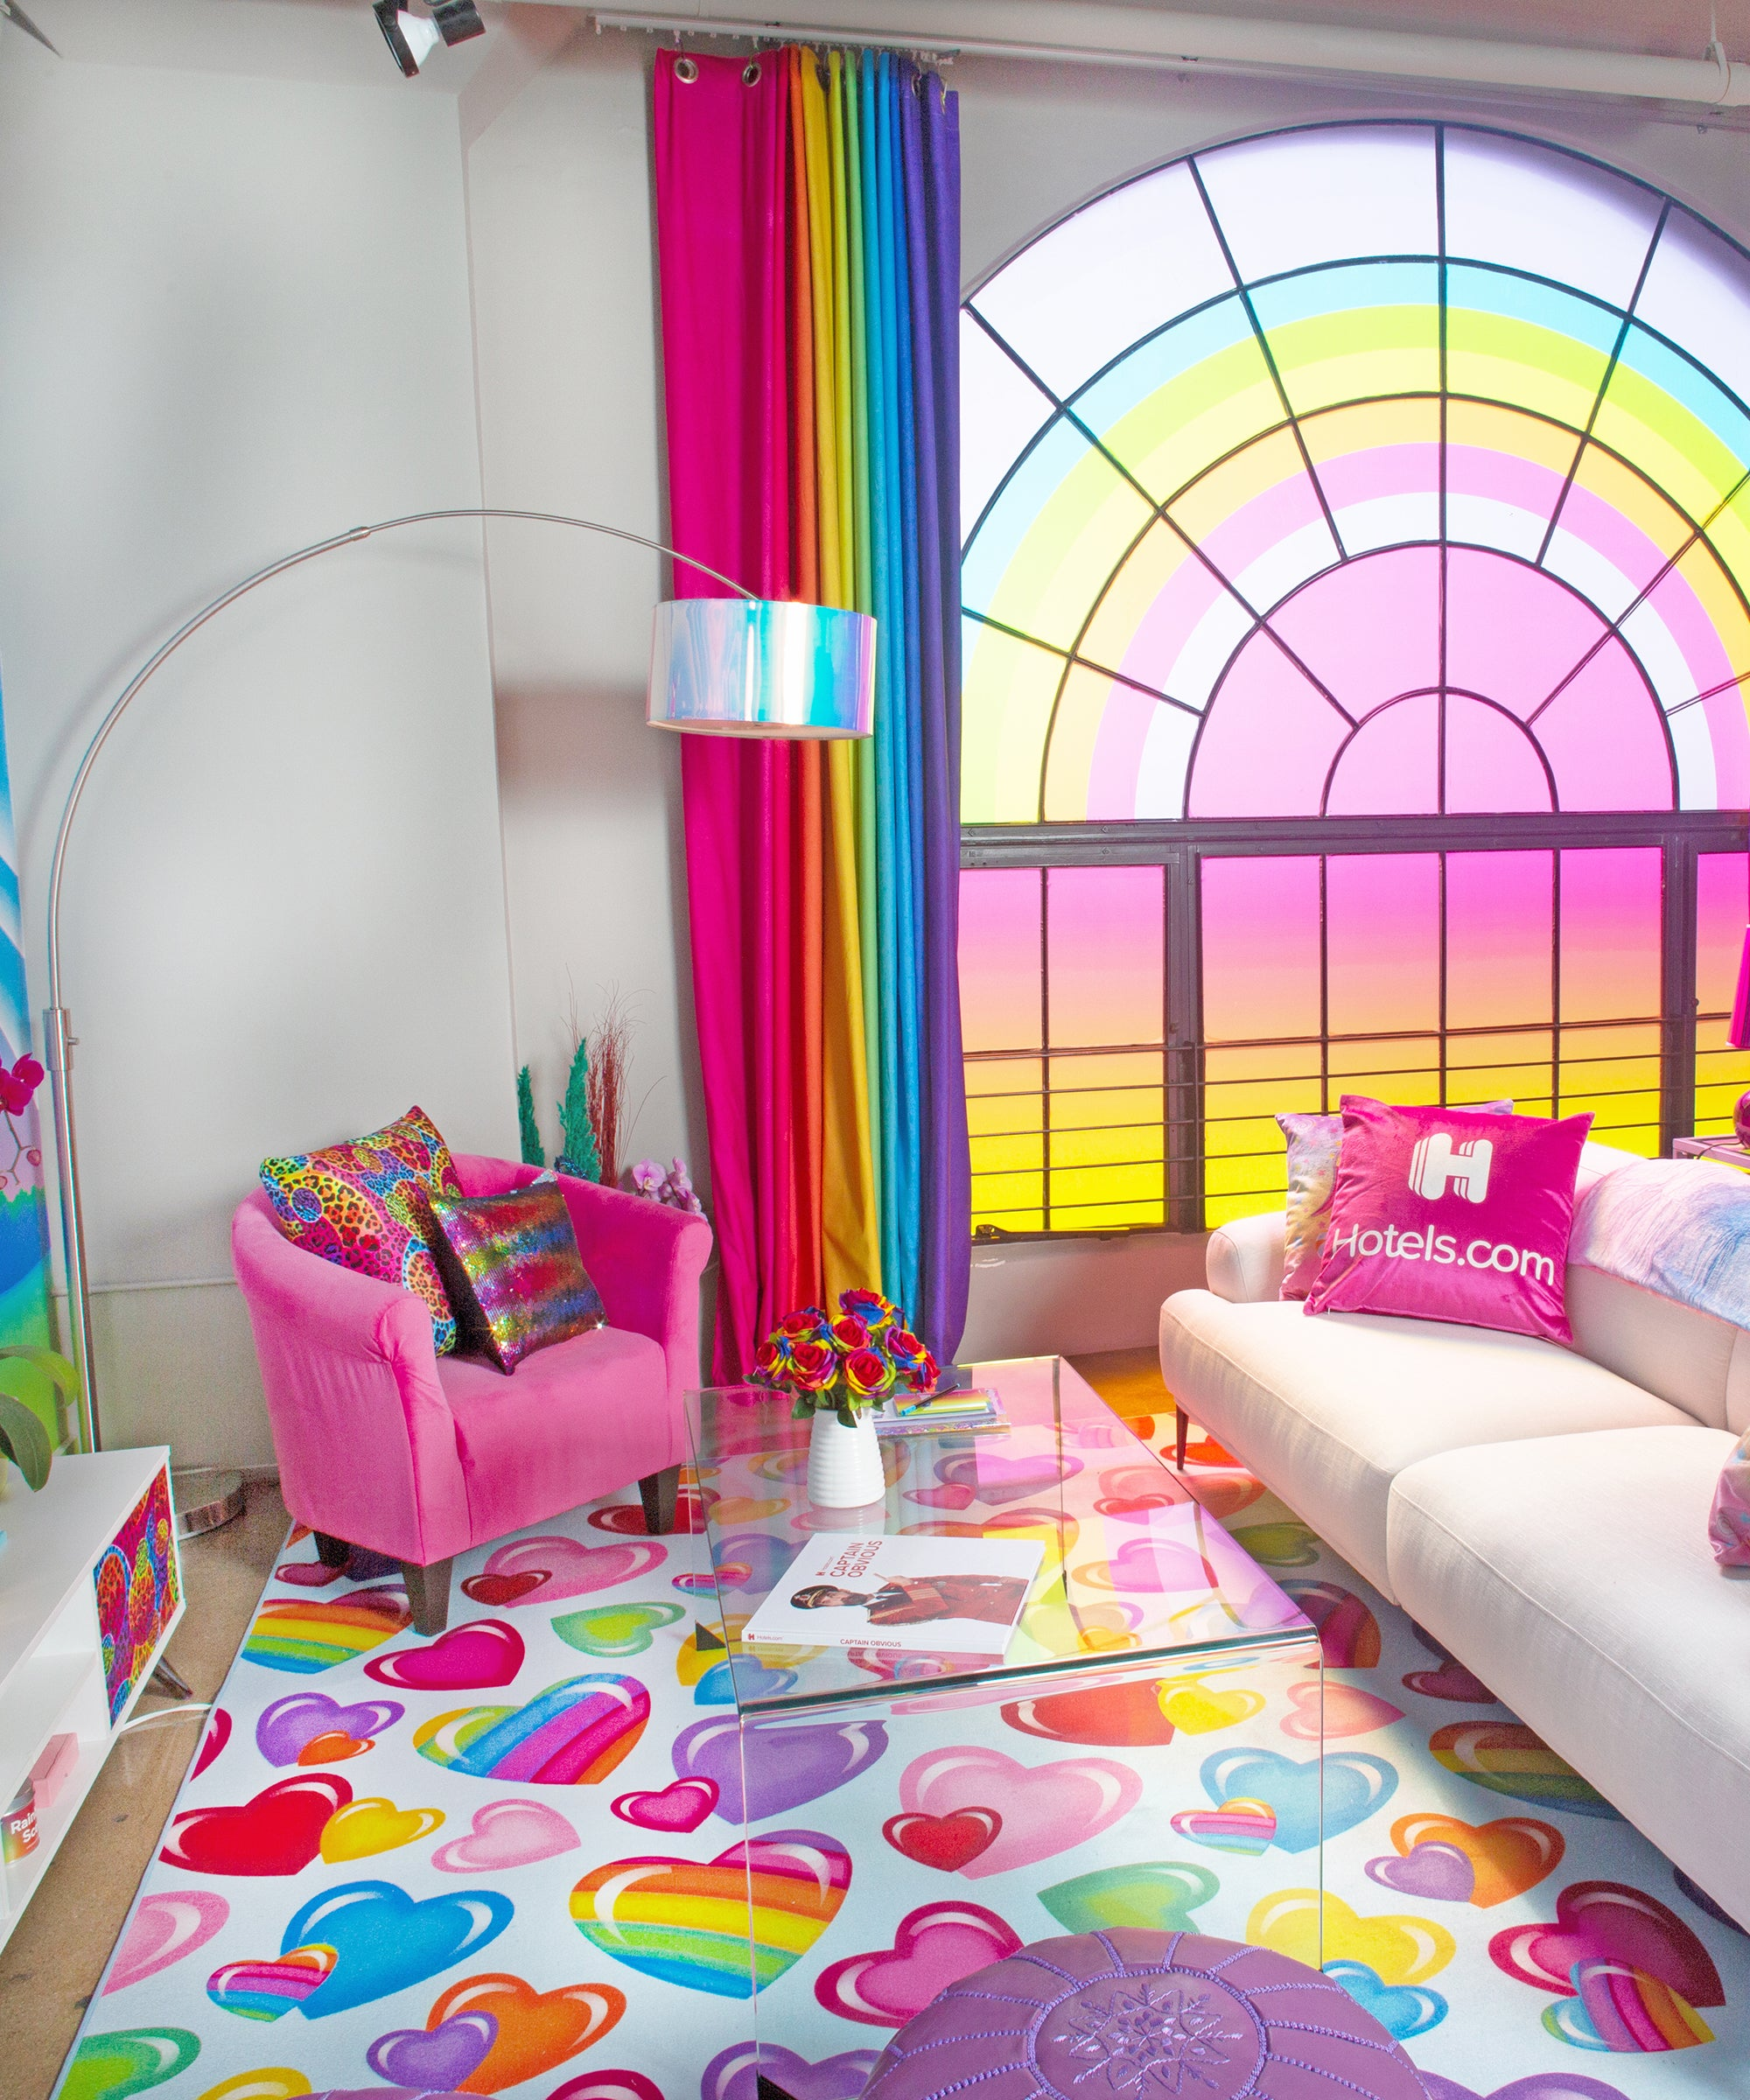 This Lisa Frank Hotel Room Is Here To Make All Your Tween Dreams A Reality